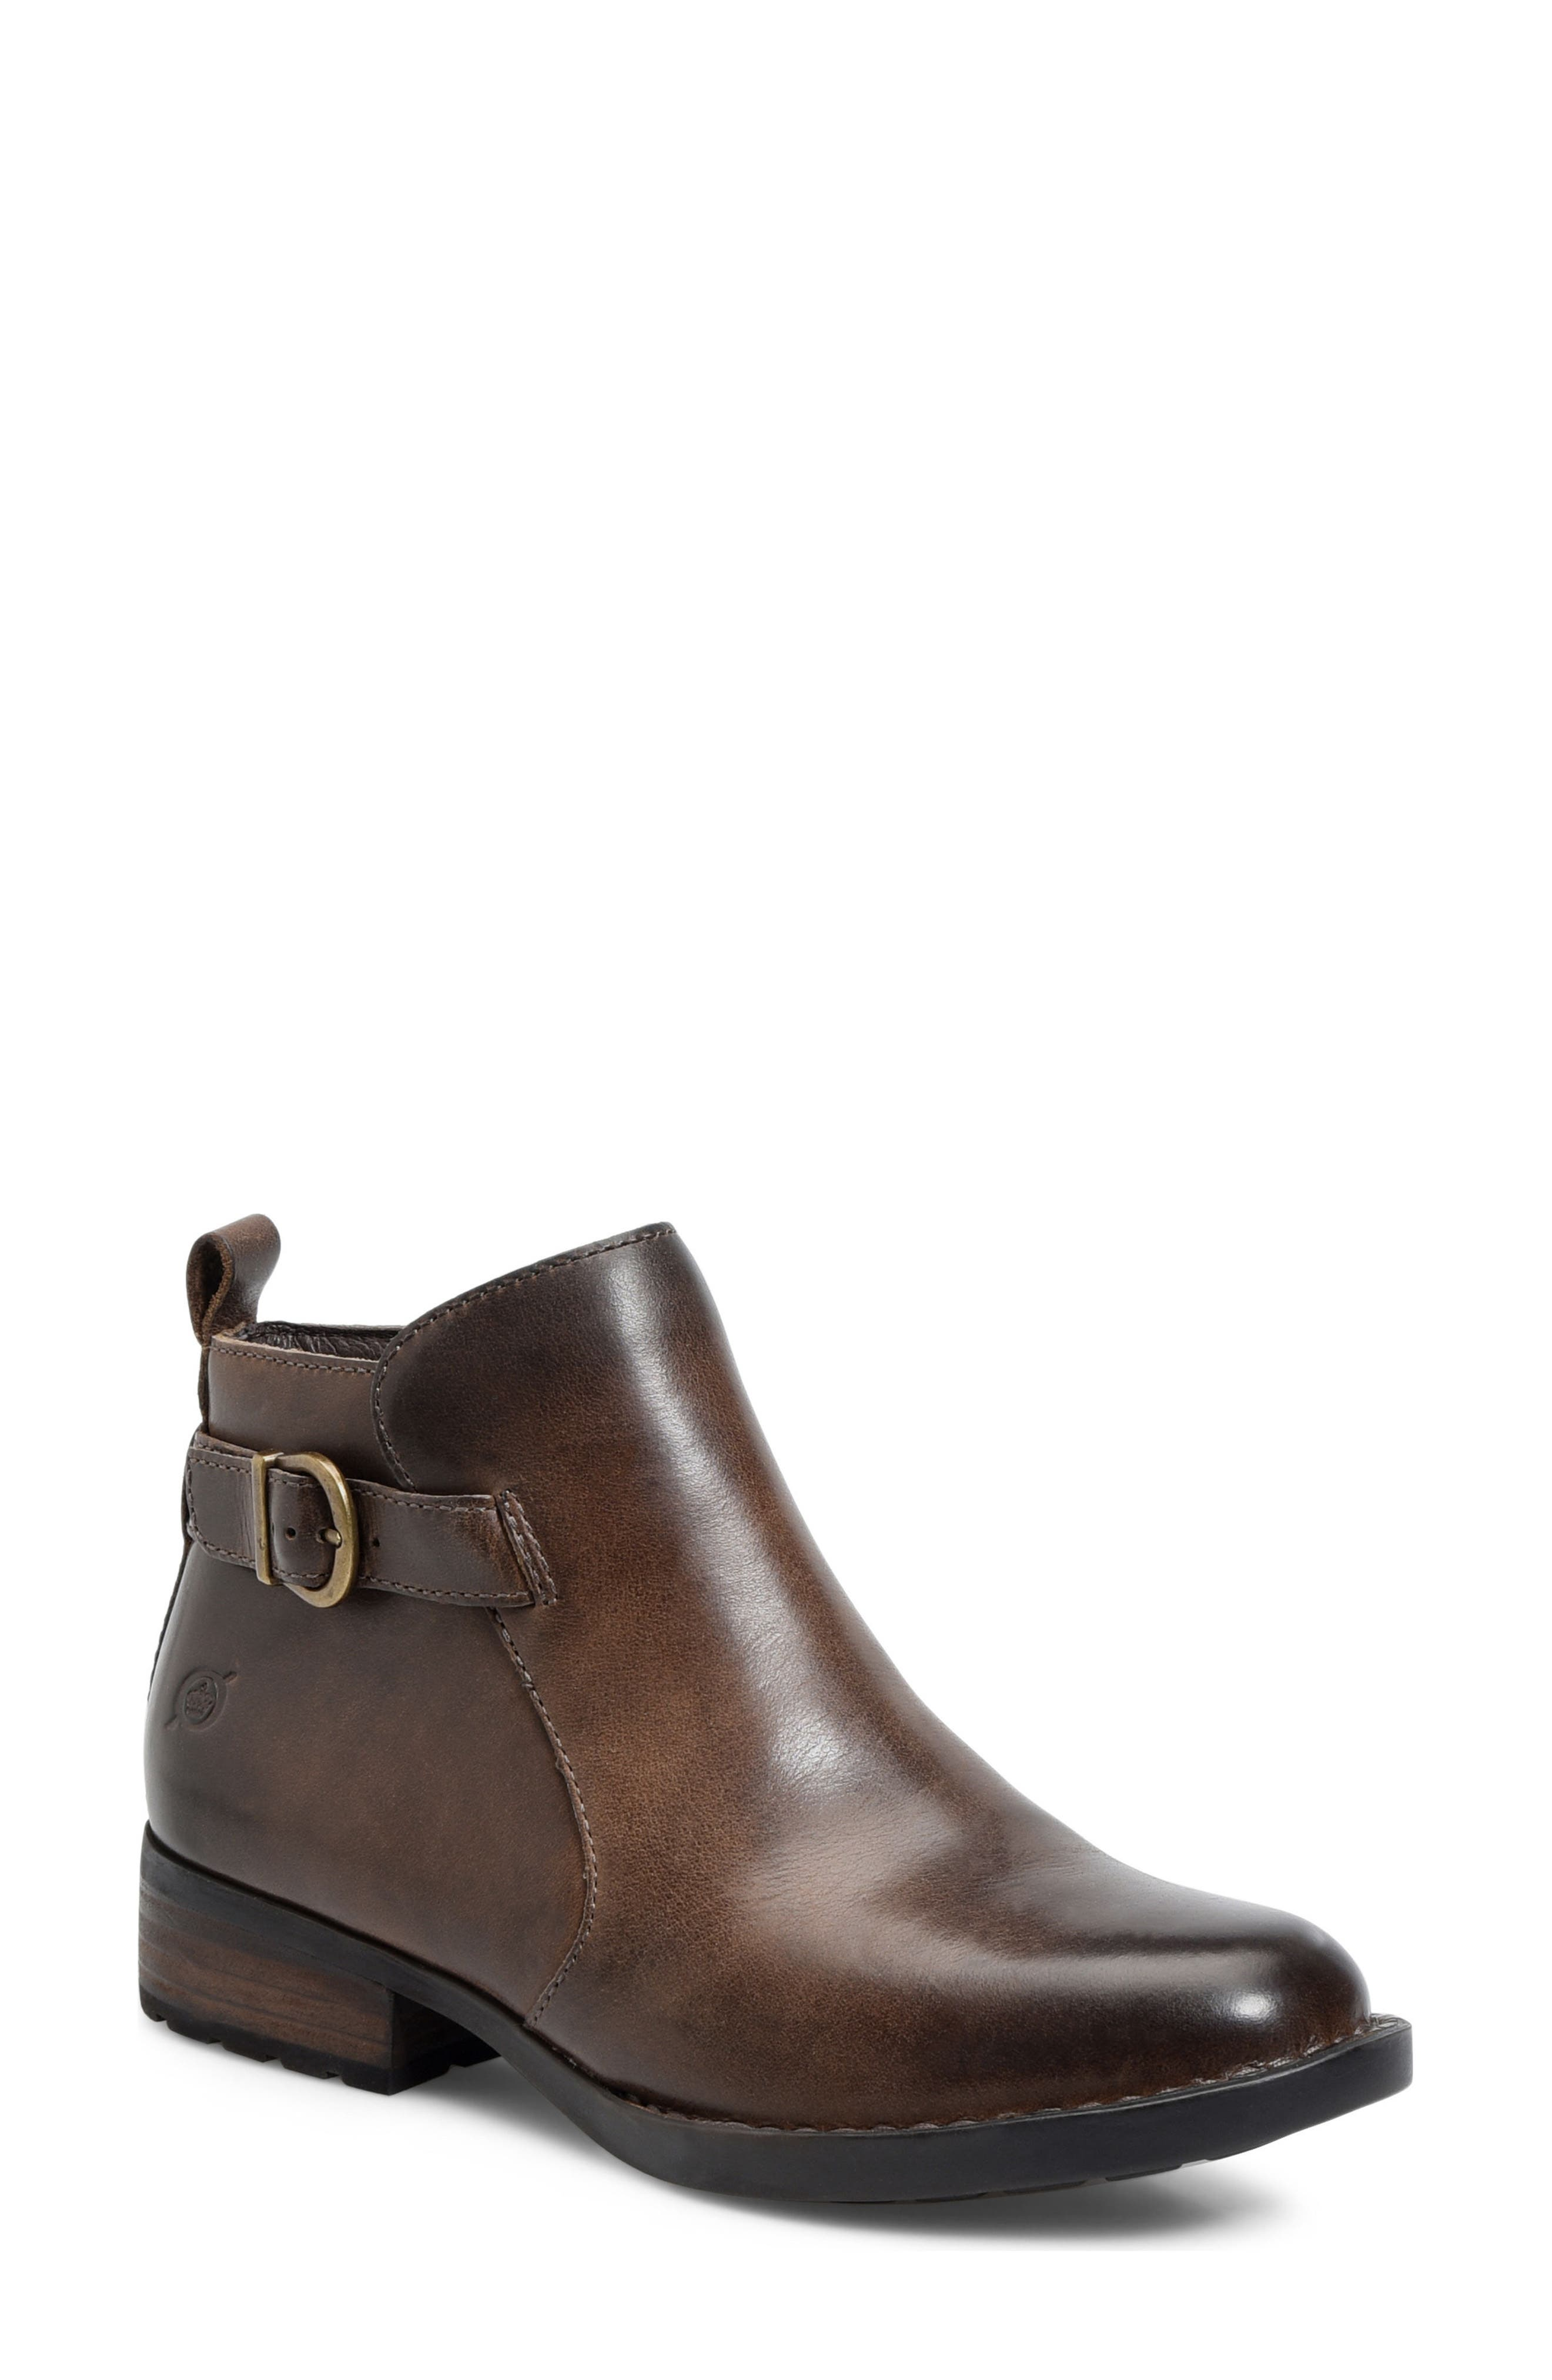 Timms Bootie,                             Main thumbnail 1, color,                             Brown Leather